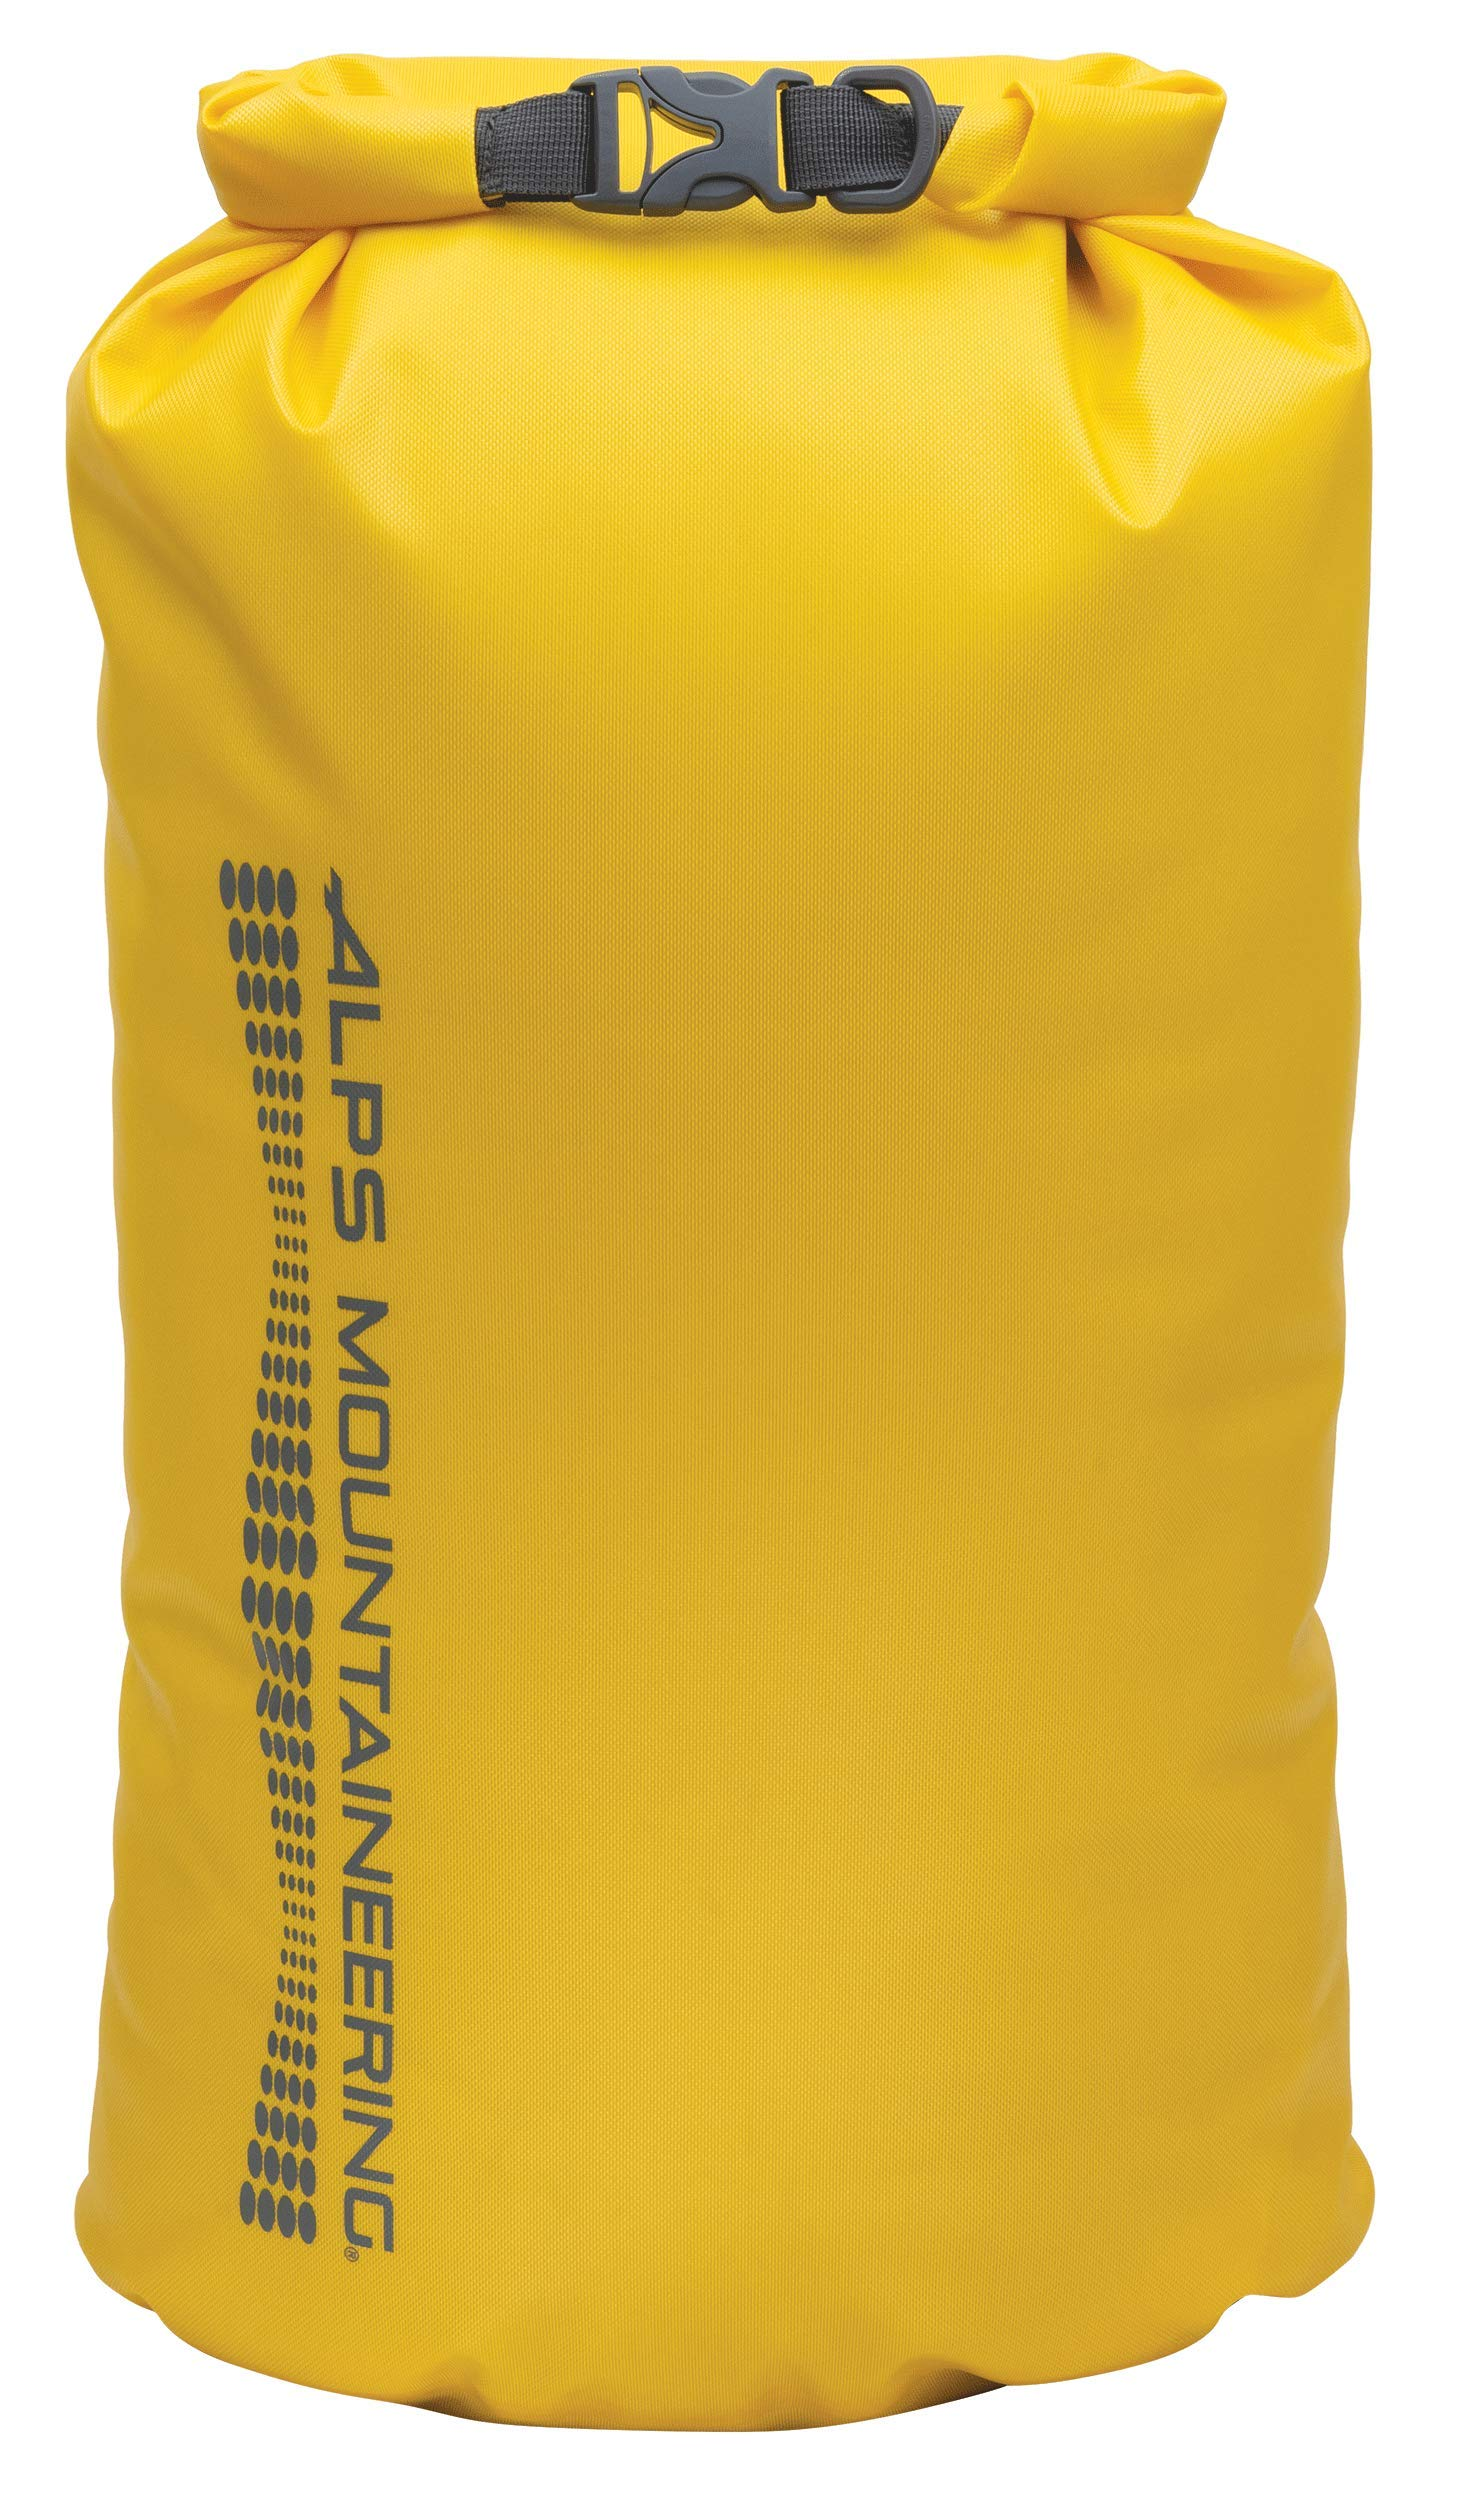 ALPS Mountaineering Dry Passage Waterproof Dry Bag 50L, Gold by ALPS Mountaineering